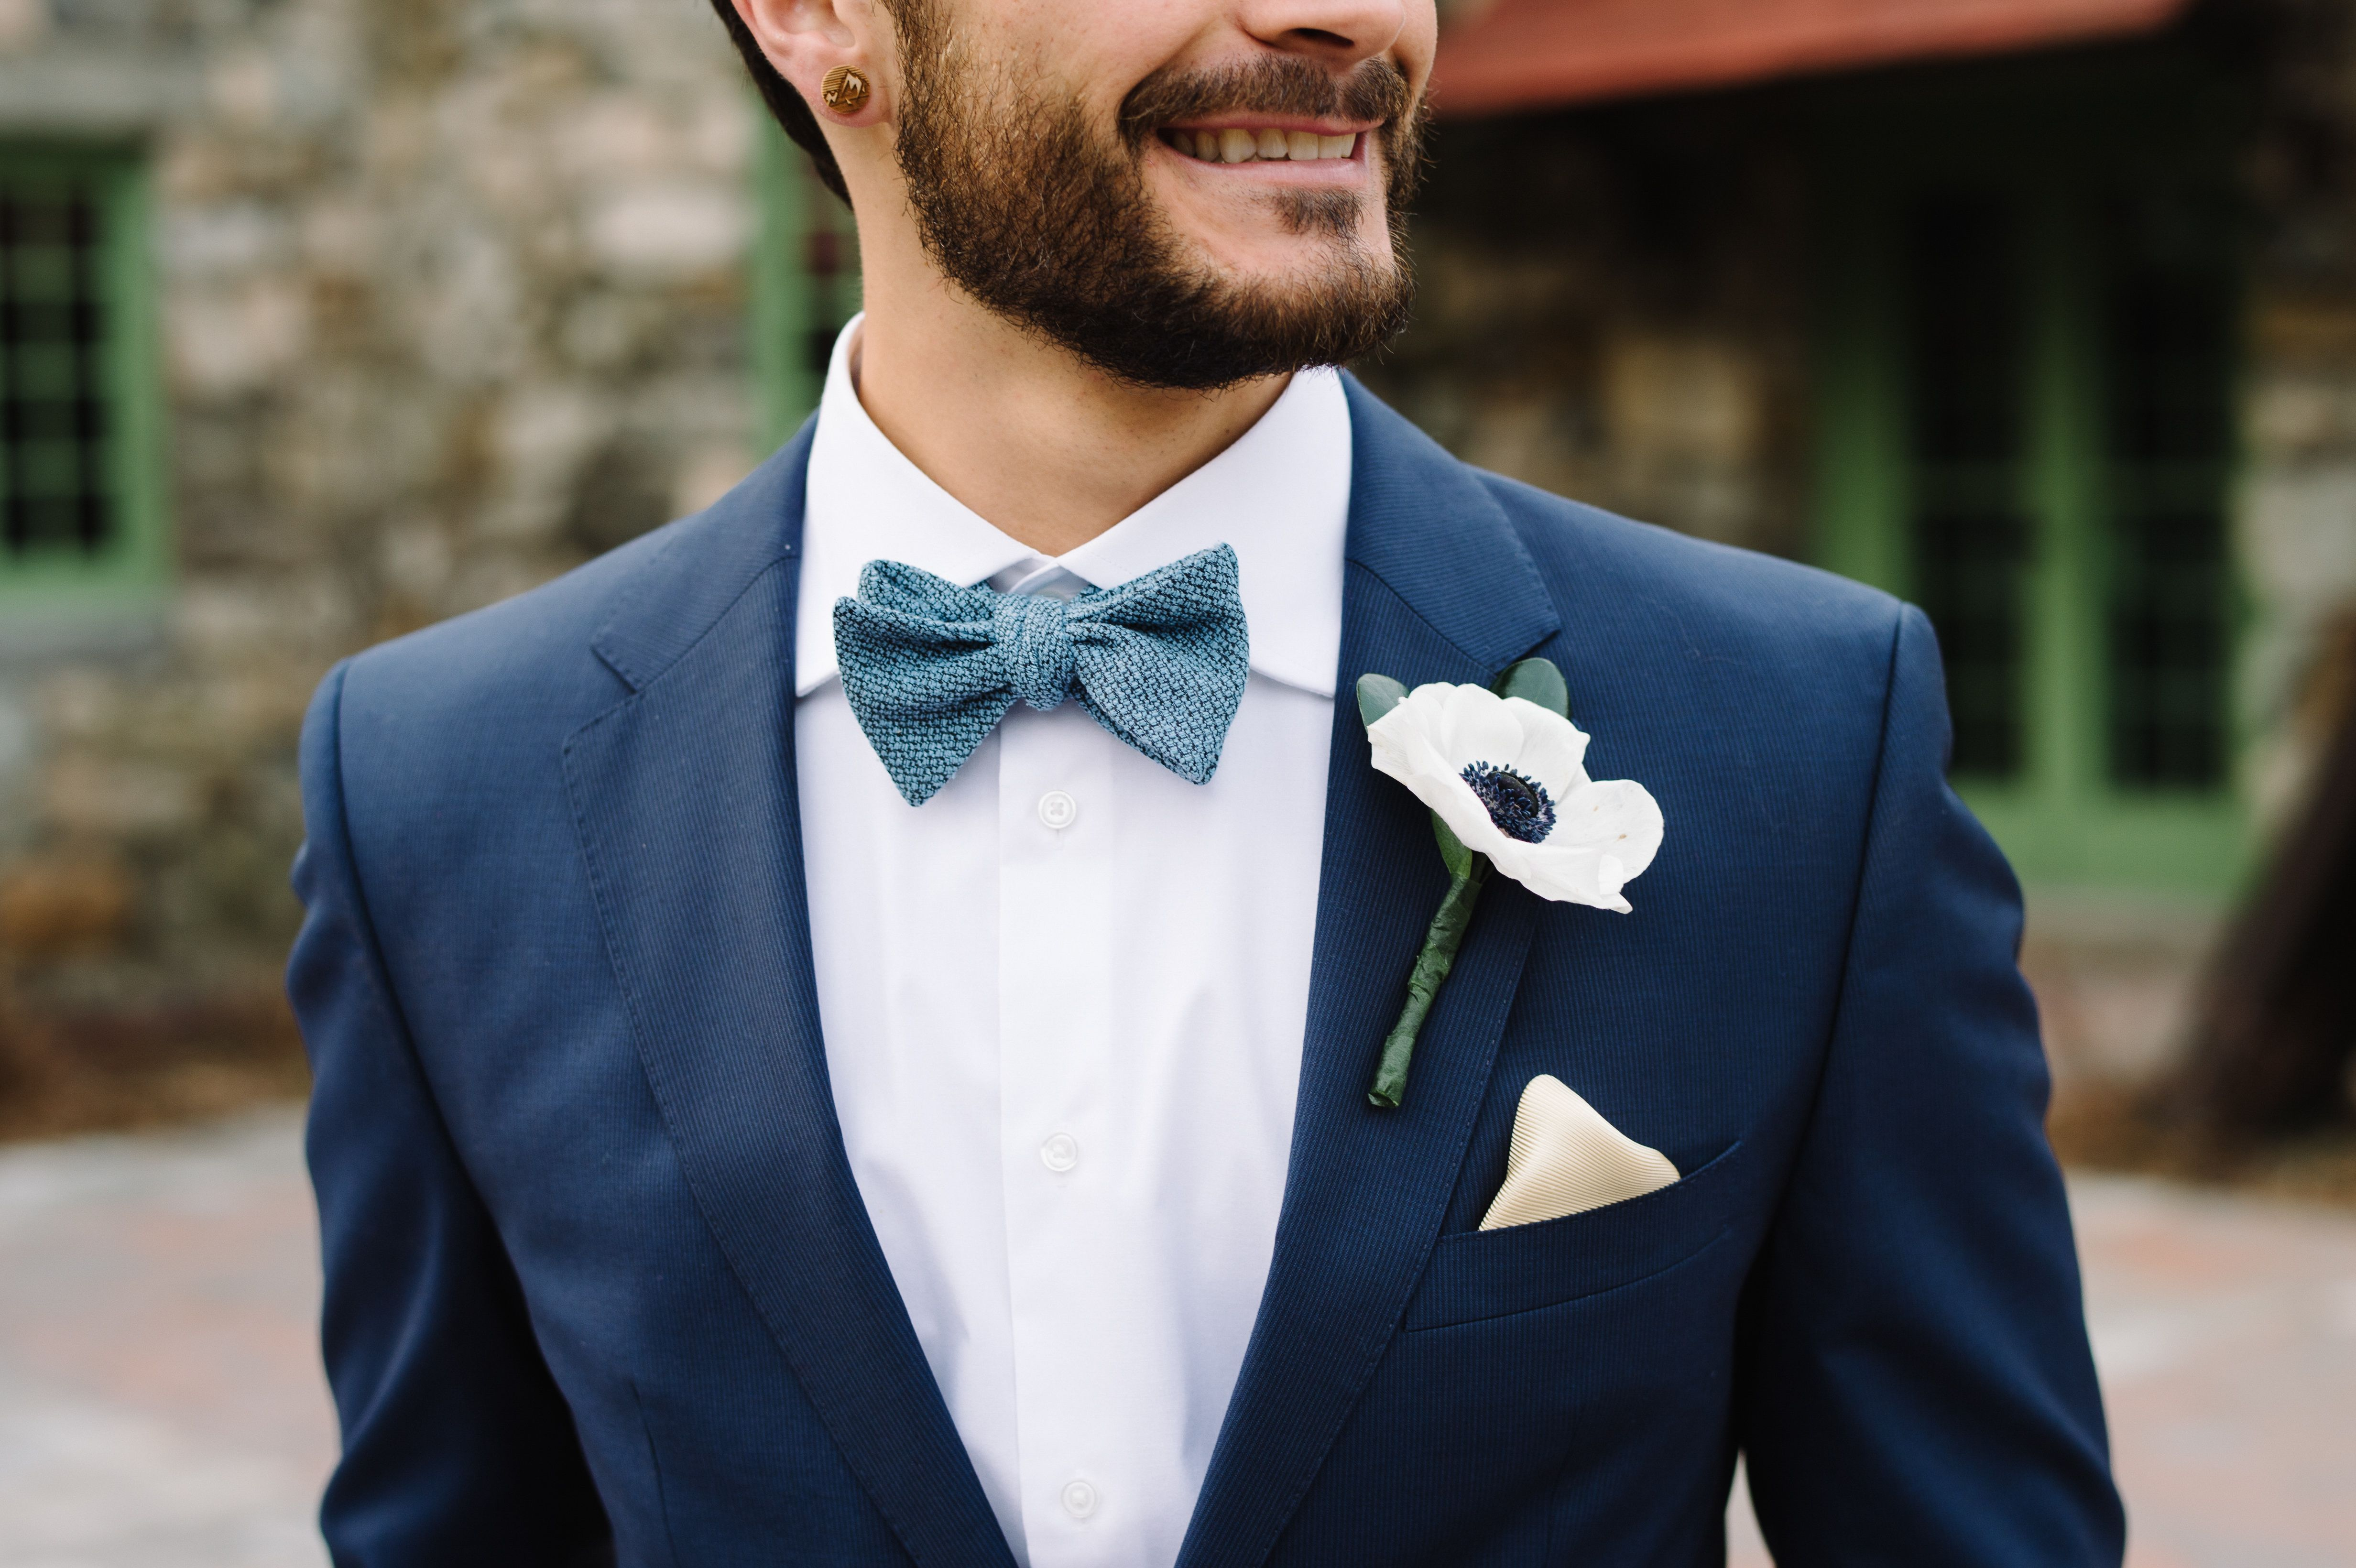 This Groom Has Style Sporting A Navy Suit And Blue Bow Tie For His Wedding Day At Historic Wedding Venue Blue Suit Bow Tie Blue Suit Wedding Navy Suit Wedding